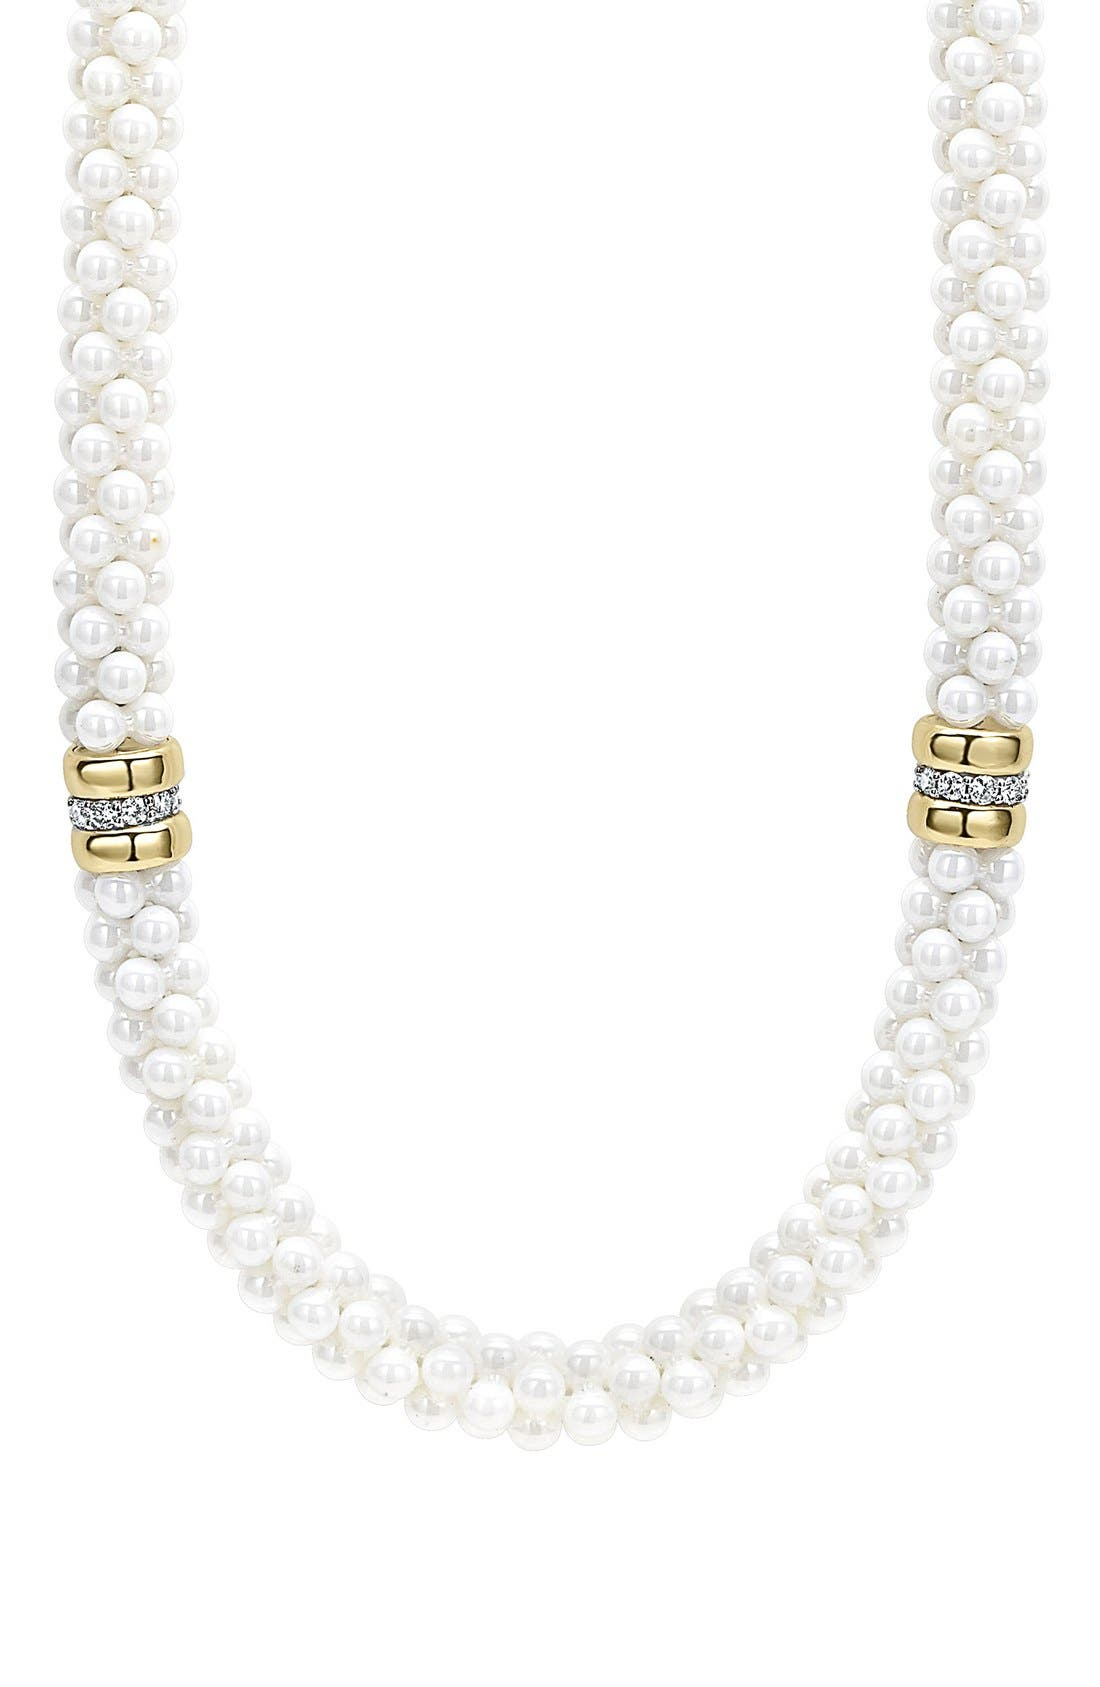 'White Caviar' 7mm Beaded Diamond Station Necklace,                             Alternate thumbnail 2, color,                             White Caviar/ Yellow Gold